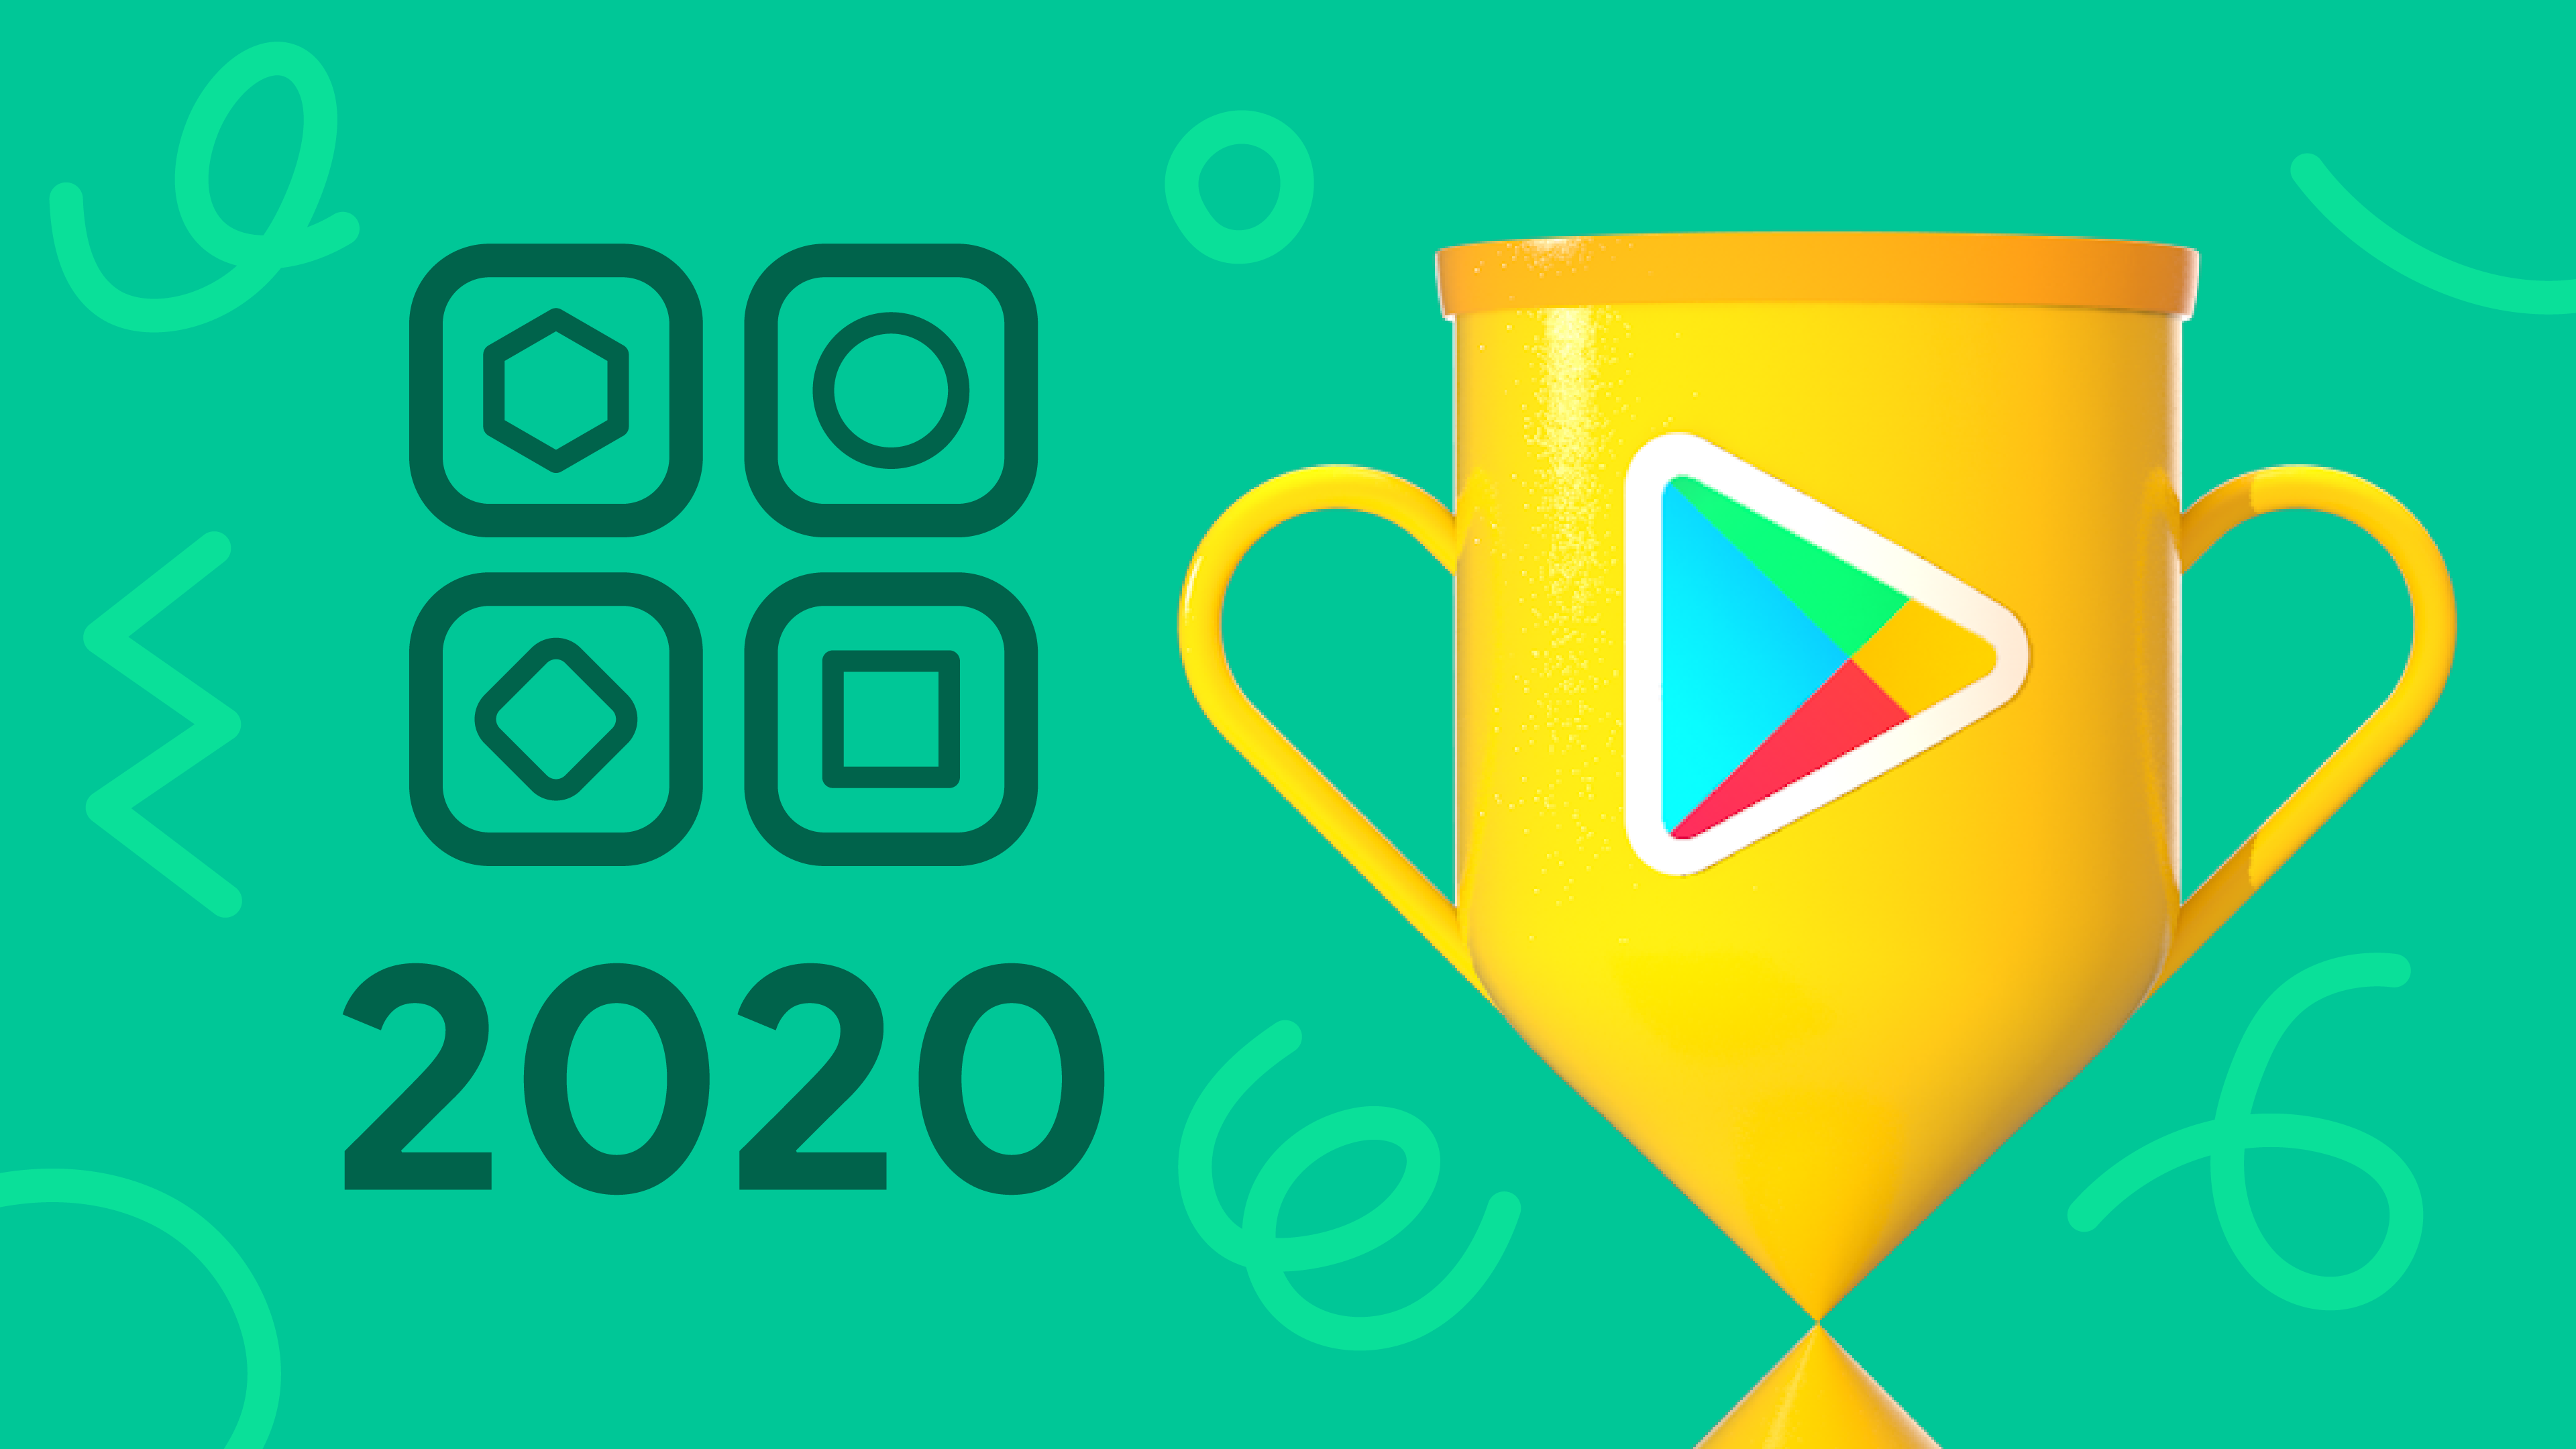 Best Apps of 2020 in India Announced